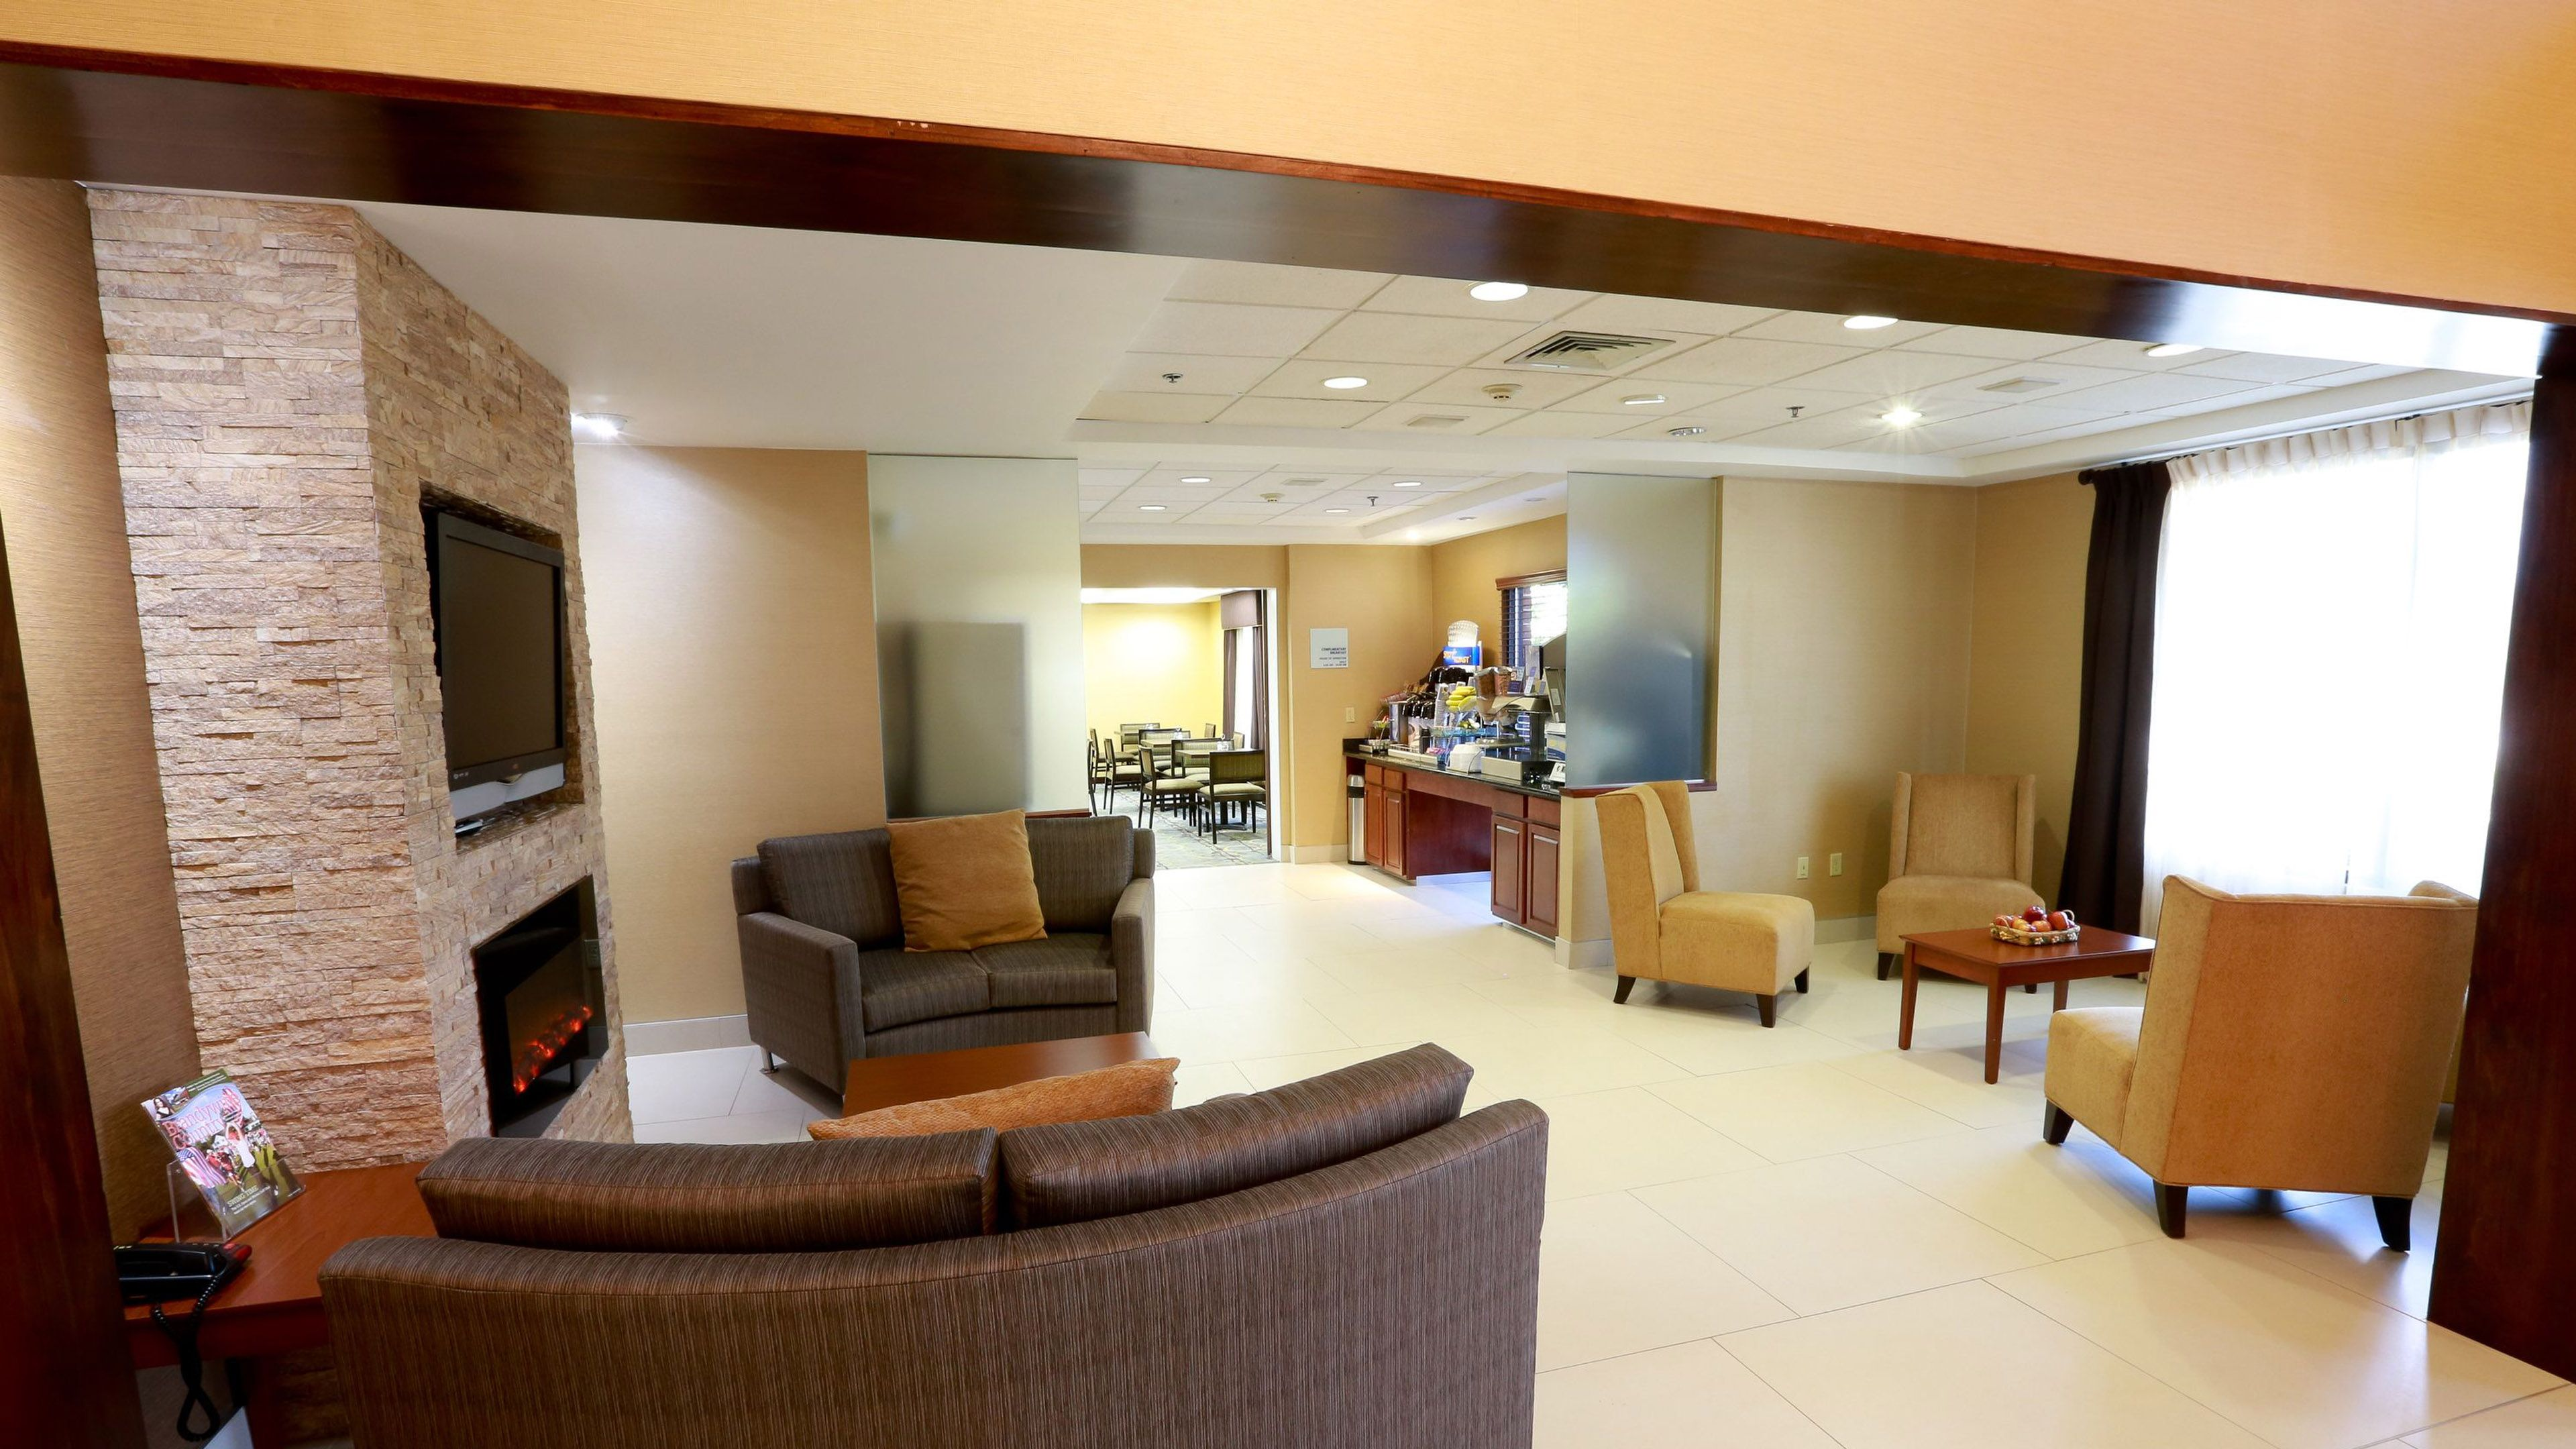 Holiday Inn Express & Suites West Chester image 2